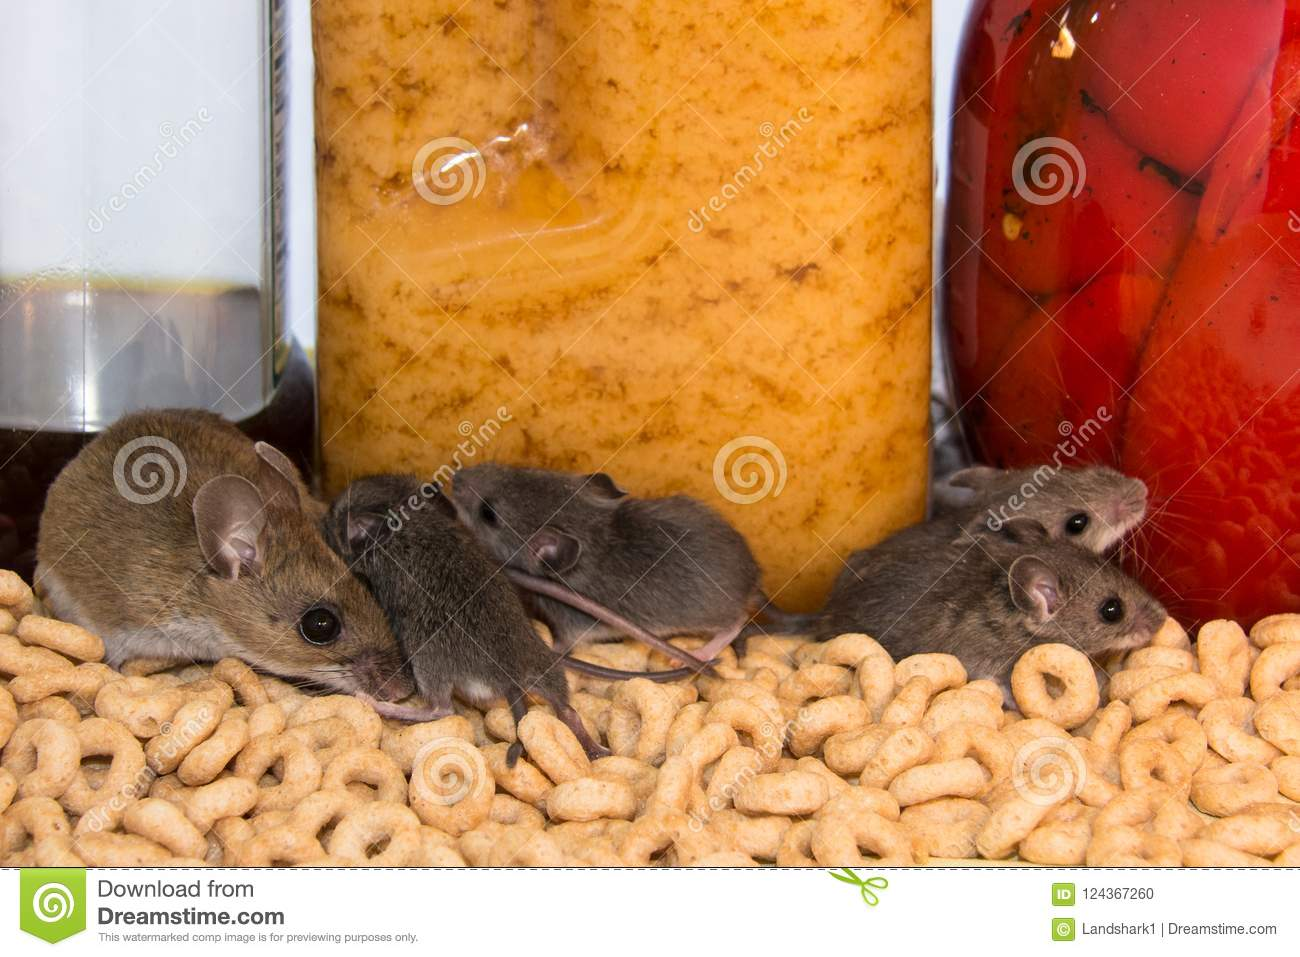 Marvelous A Family Of Wild House Mice Loose In A Kitchen Cabinet Home Interior And Landscaping Eliaenasavecom